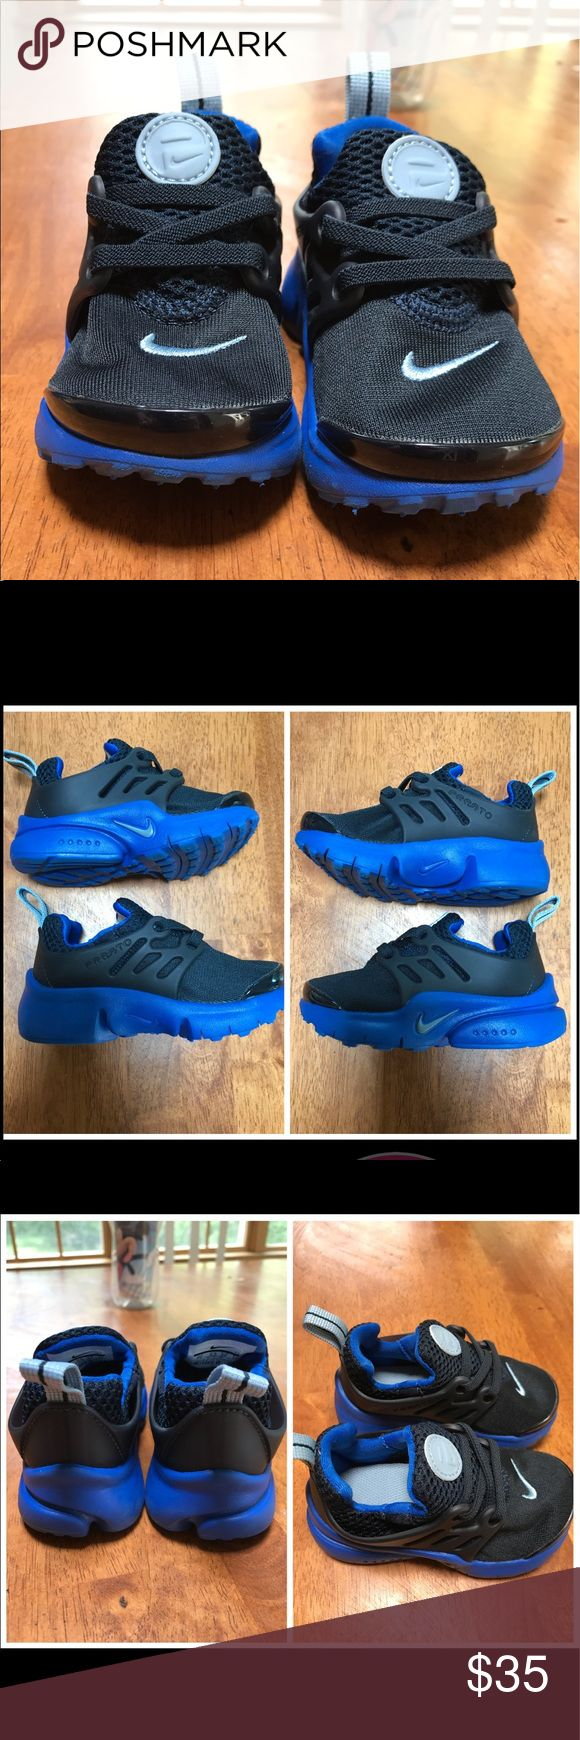 Nike Presto Toddler Size 6c Nike Presto shoes. These have only been worn 3 times!! In perfect condition!! Nike Shoes Sneakers